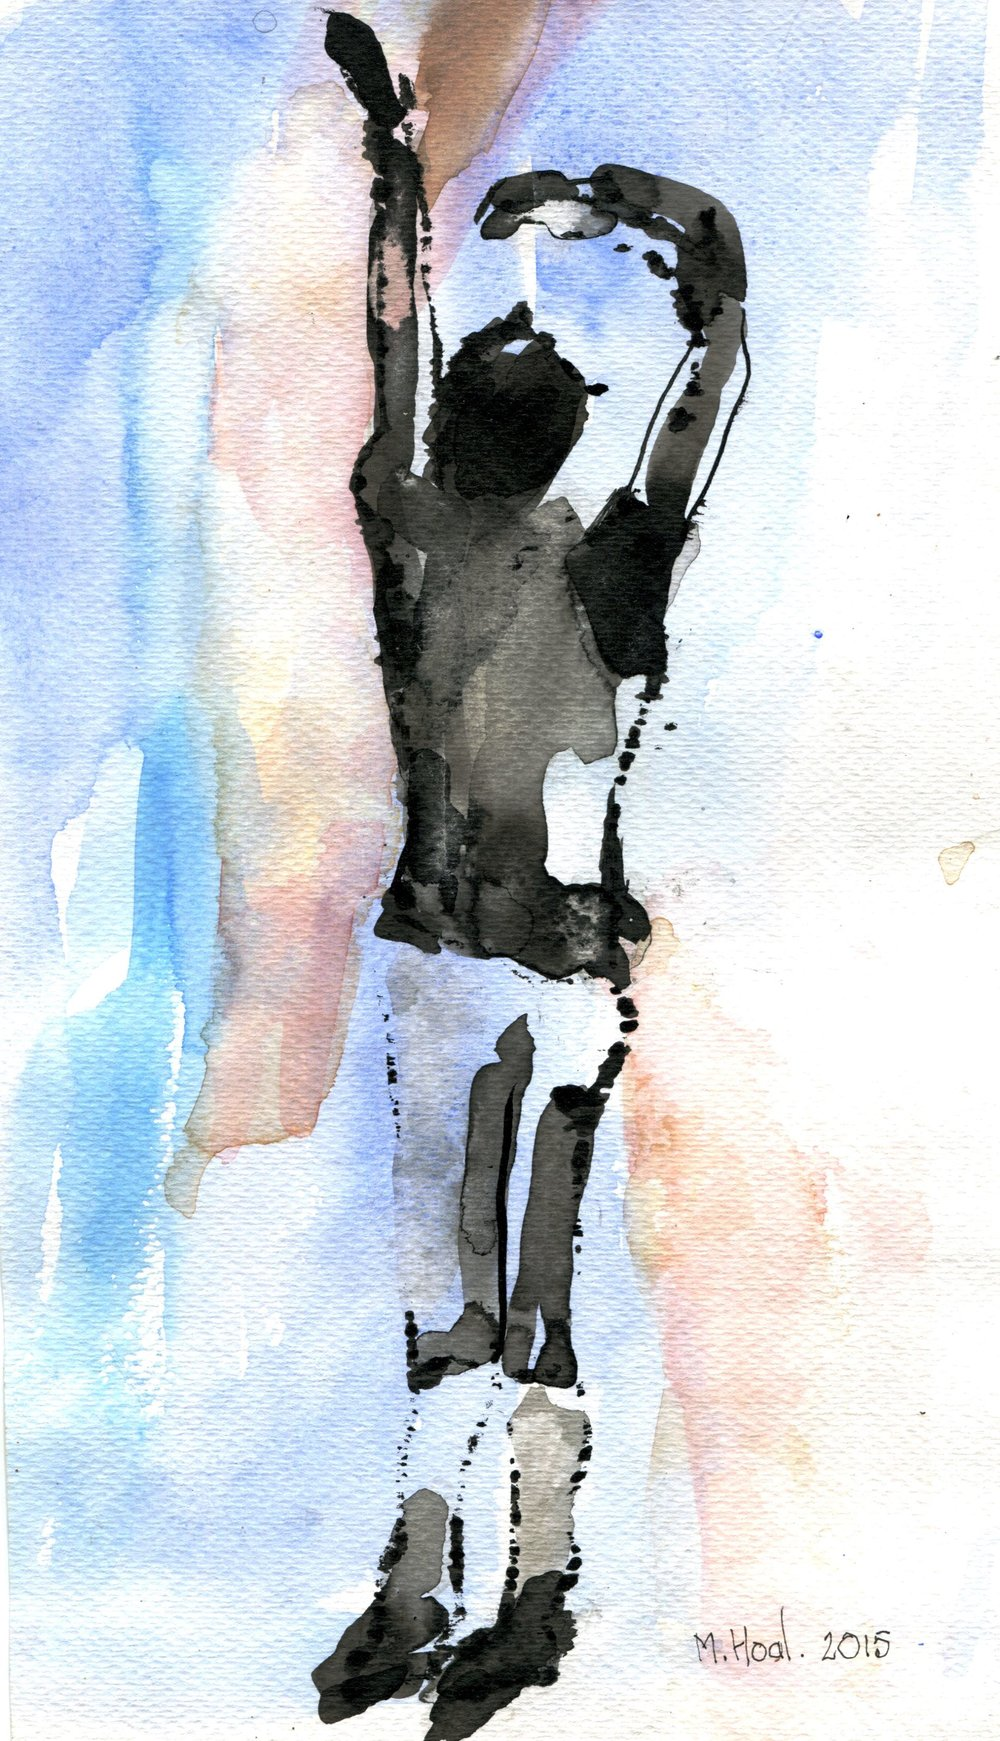 43b Helen Margaret Hoal, Jump for Joy, Inkblot and watercolour on paper